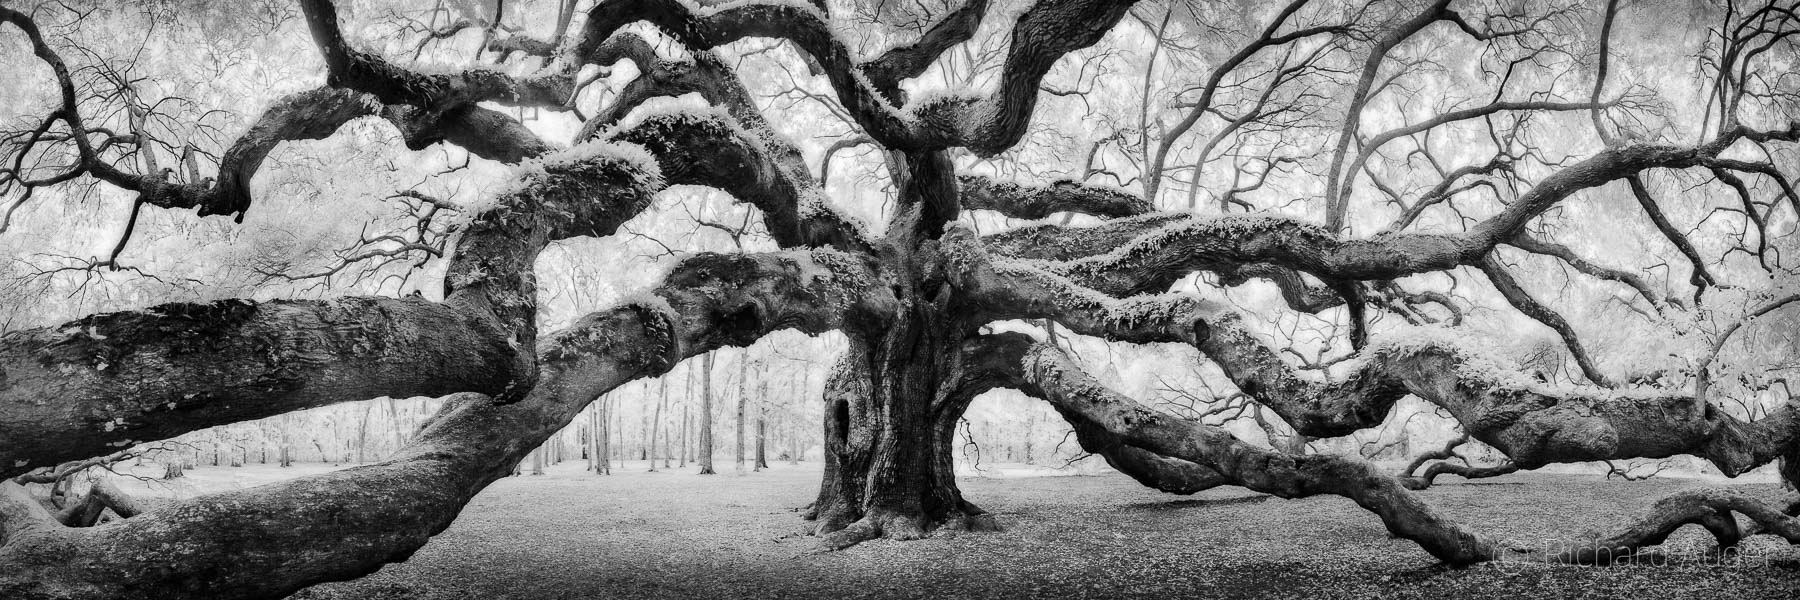 Angel Oak, South Carolina, Oak Tree, Spooky, forest, photographer, landscape, photograph